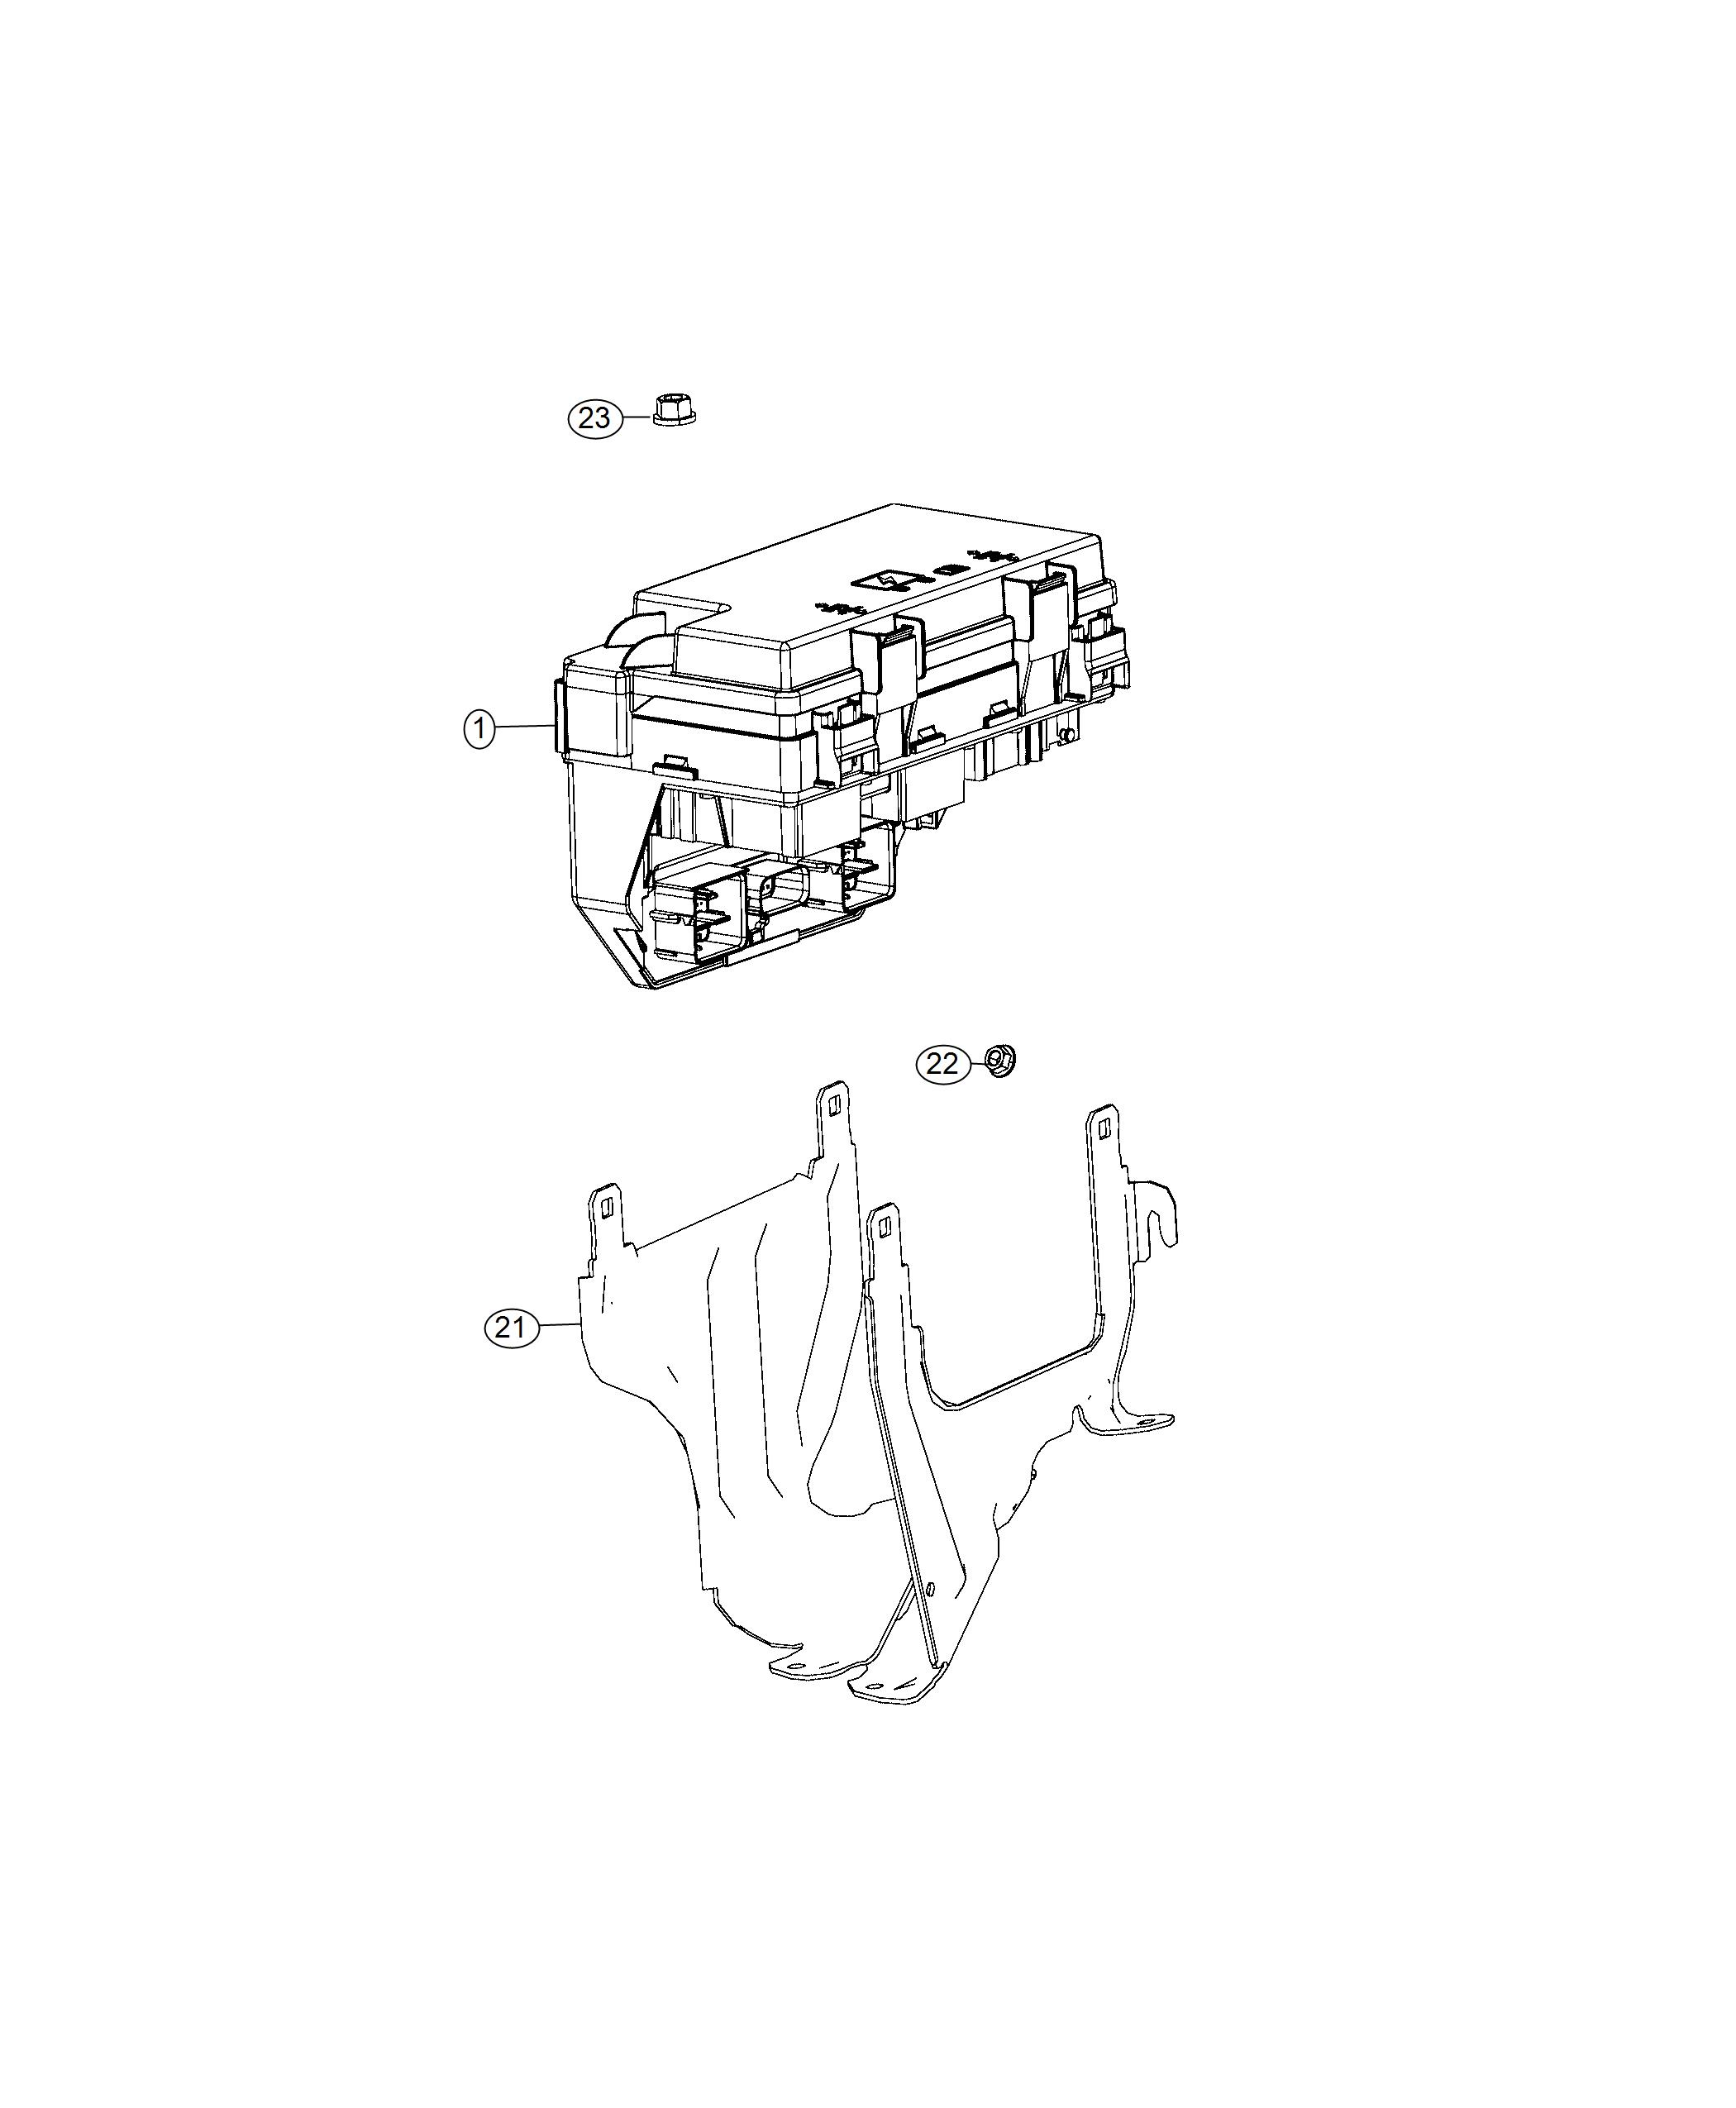 Dodge Grand Caravan Cover. Totally integrated power module